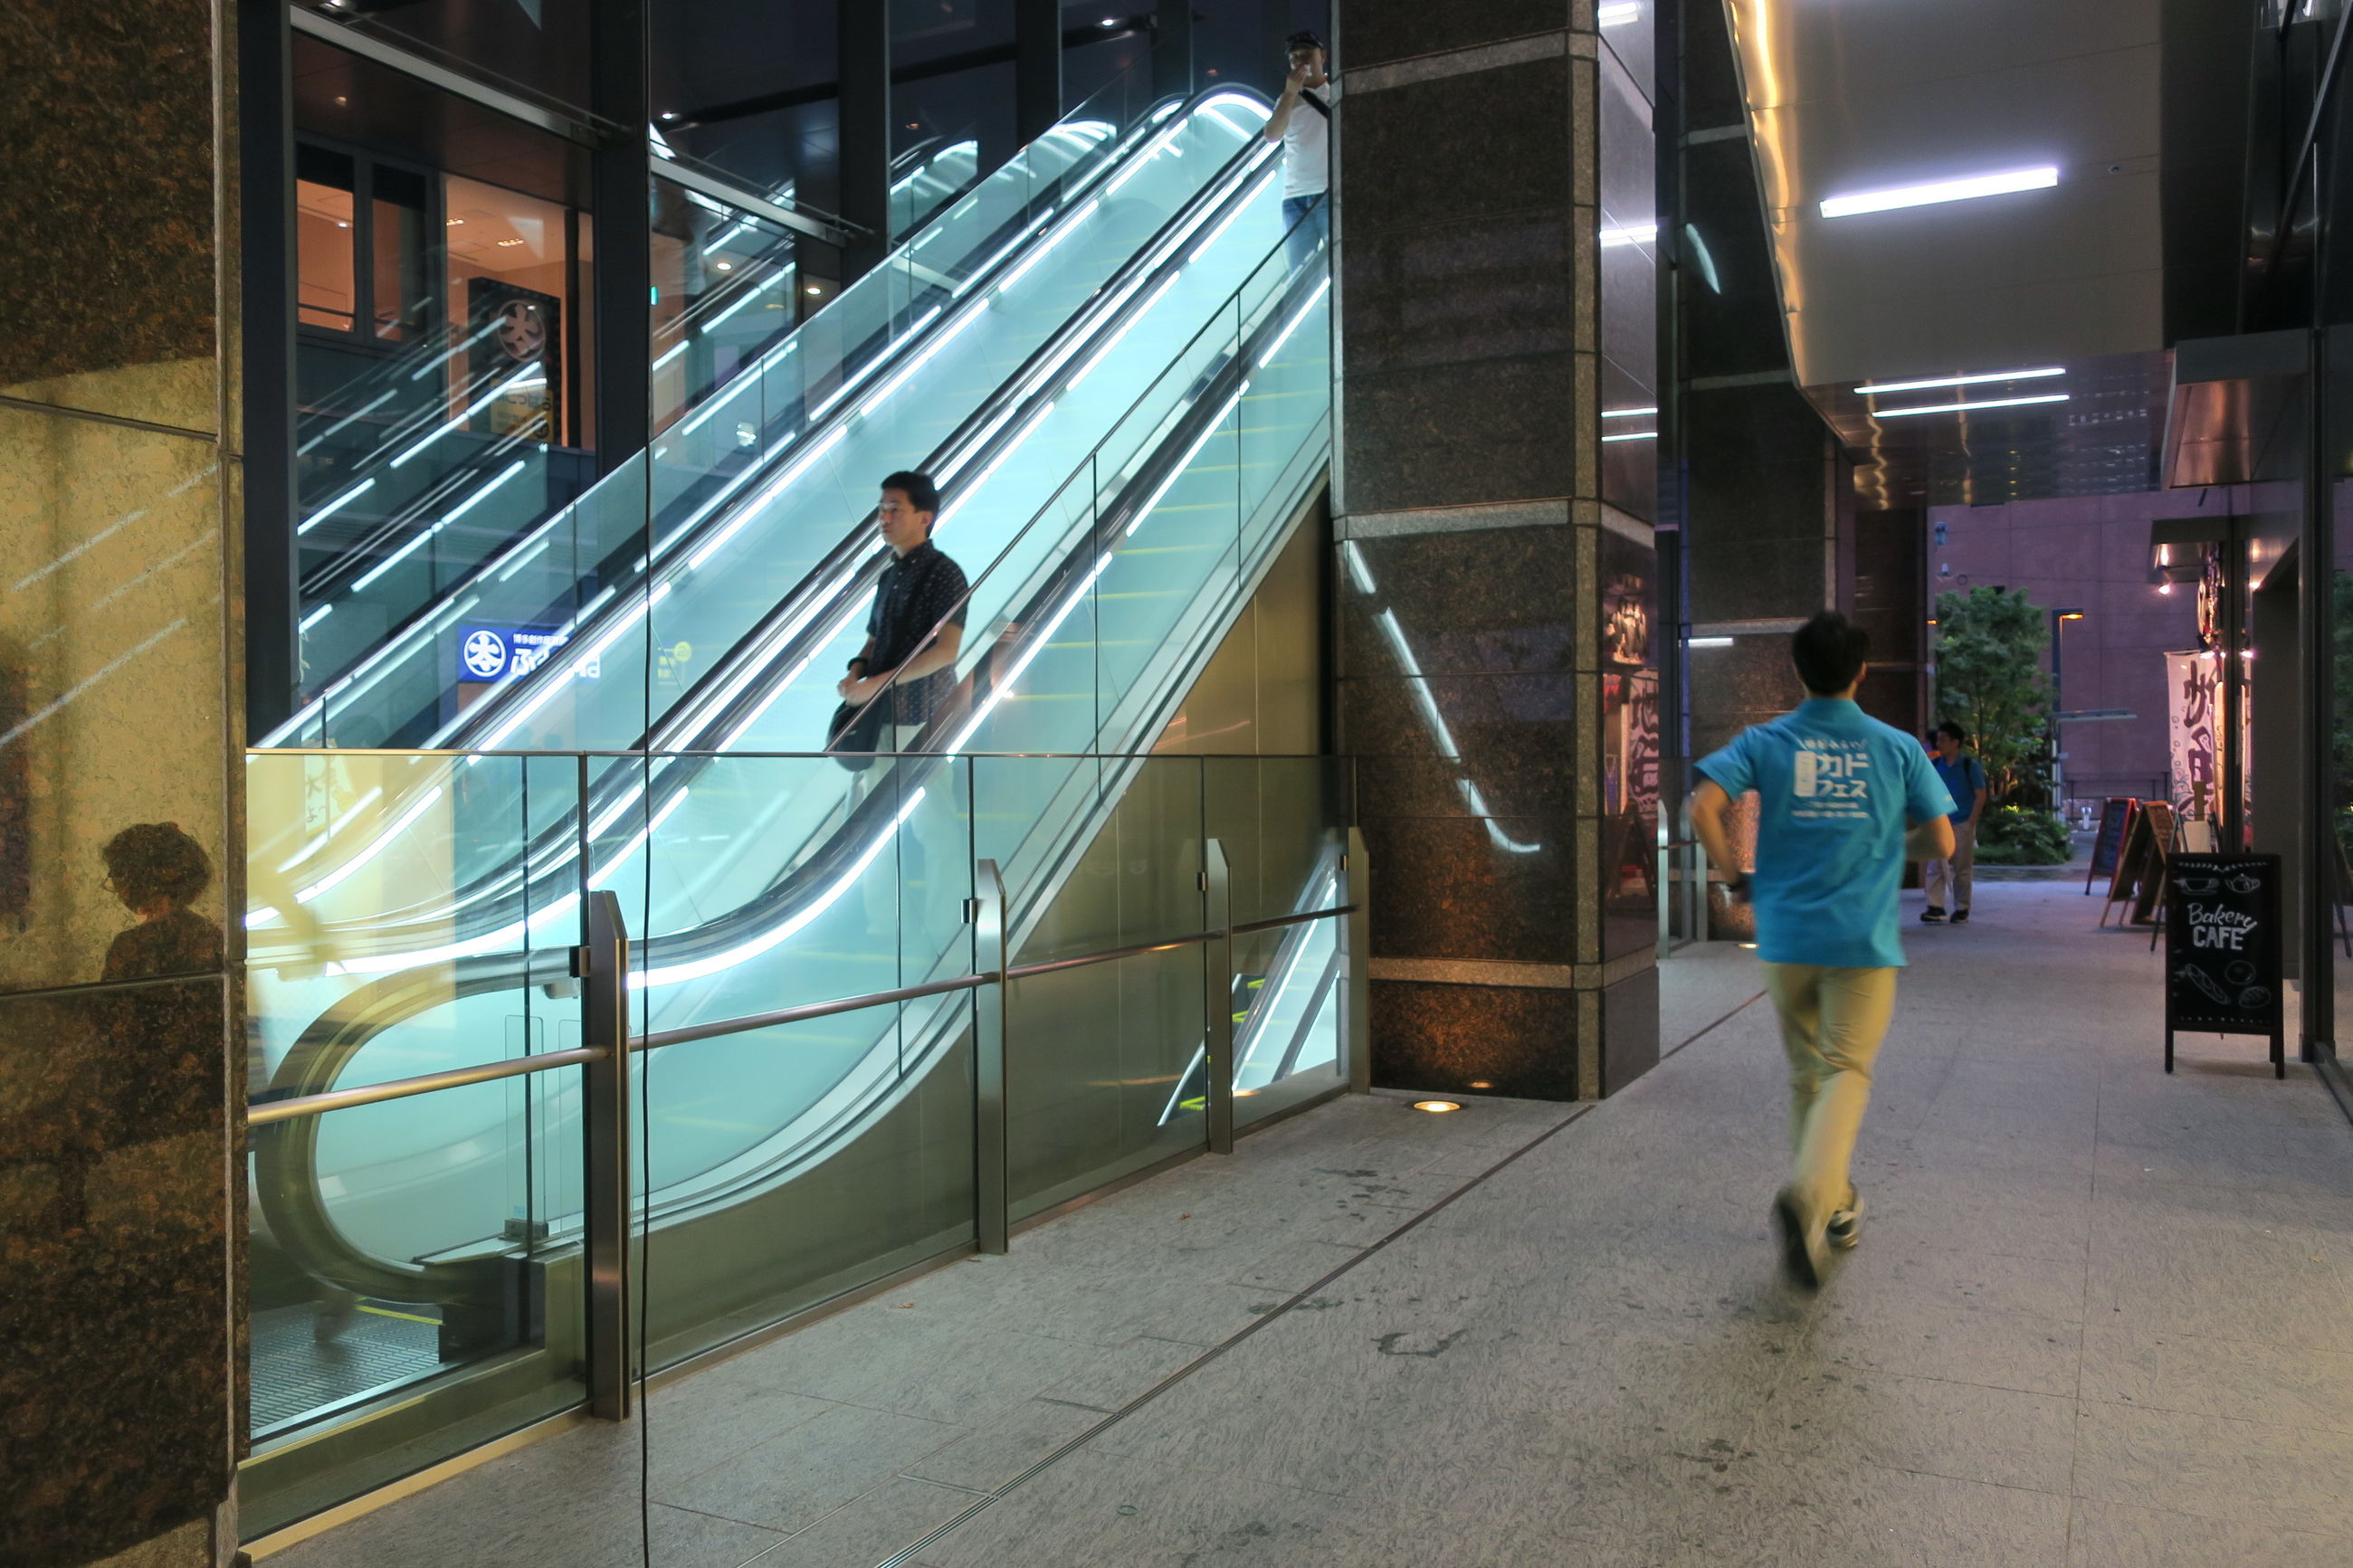 full length, architecture, walking, men, built structure, rear view, railing, city, illuminated, front view, well-dressed, person, footbridge, engineering, city life, subway station, modern